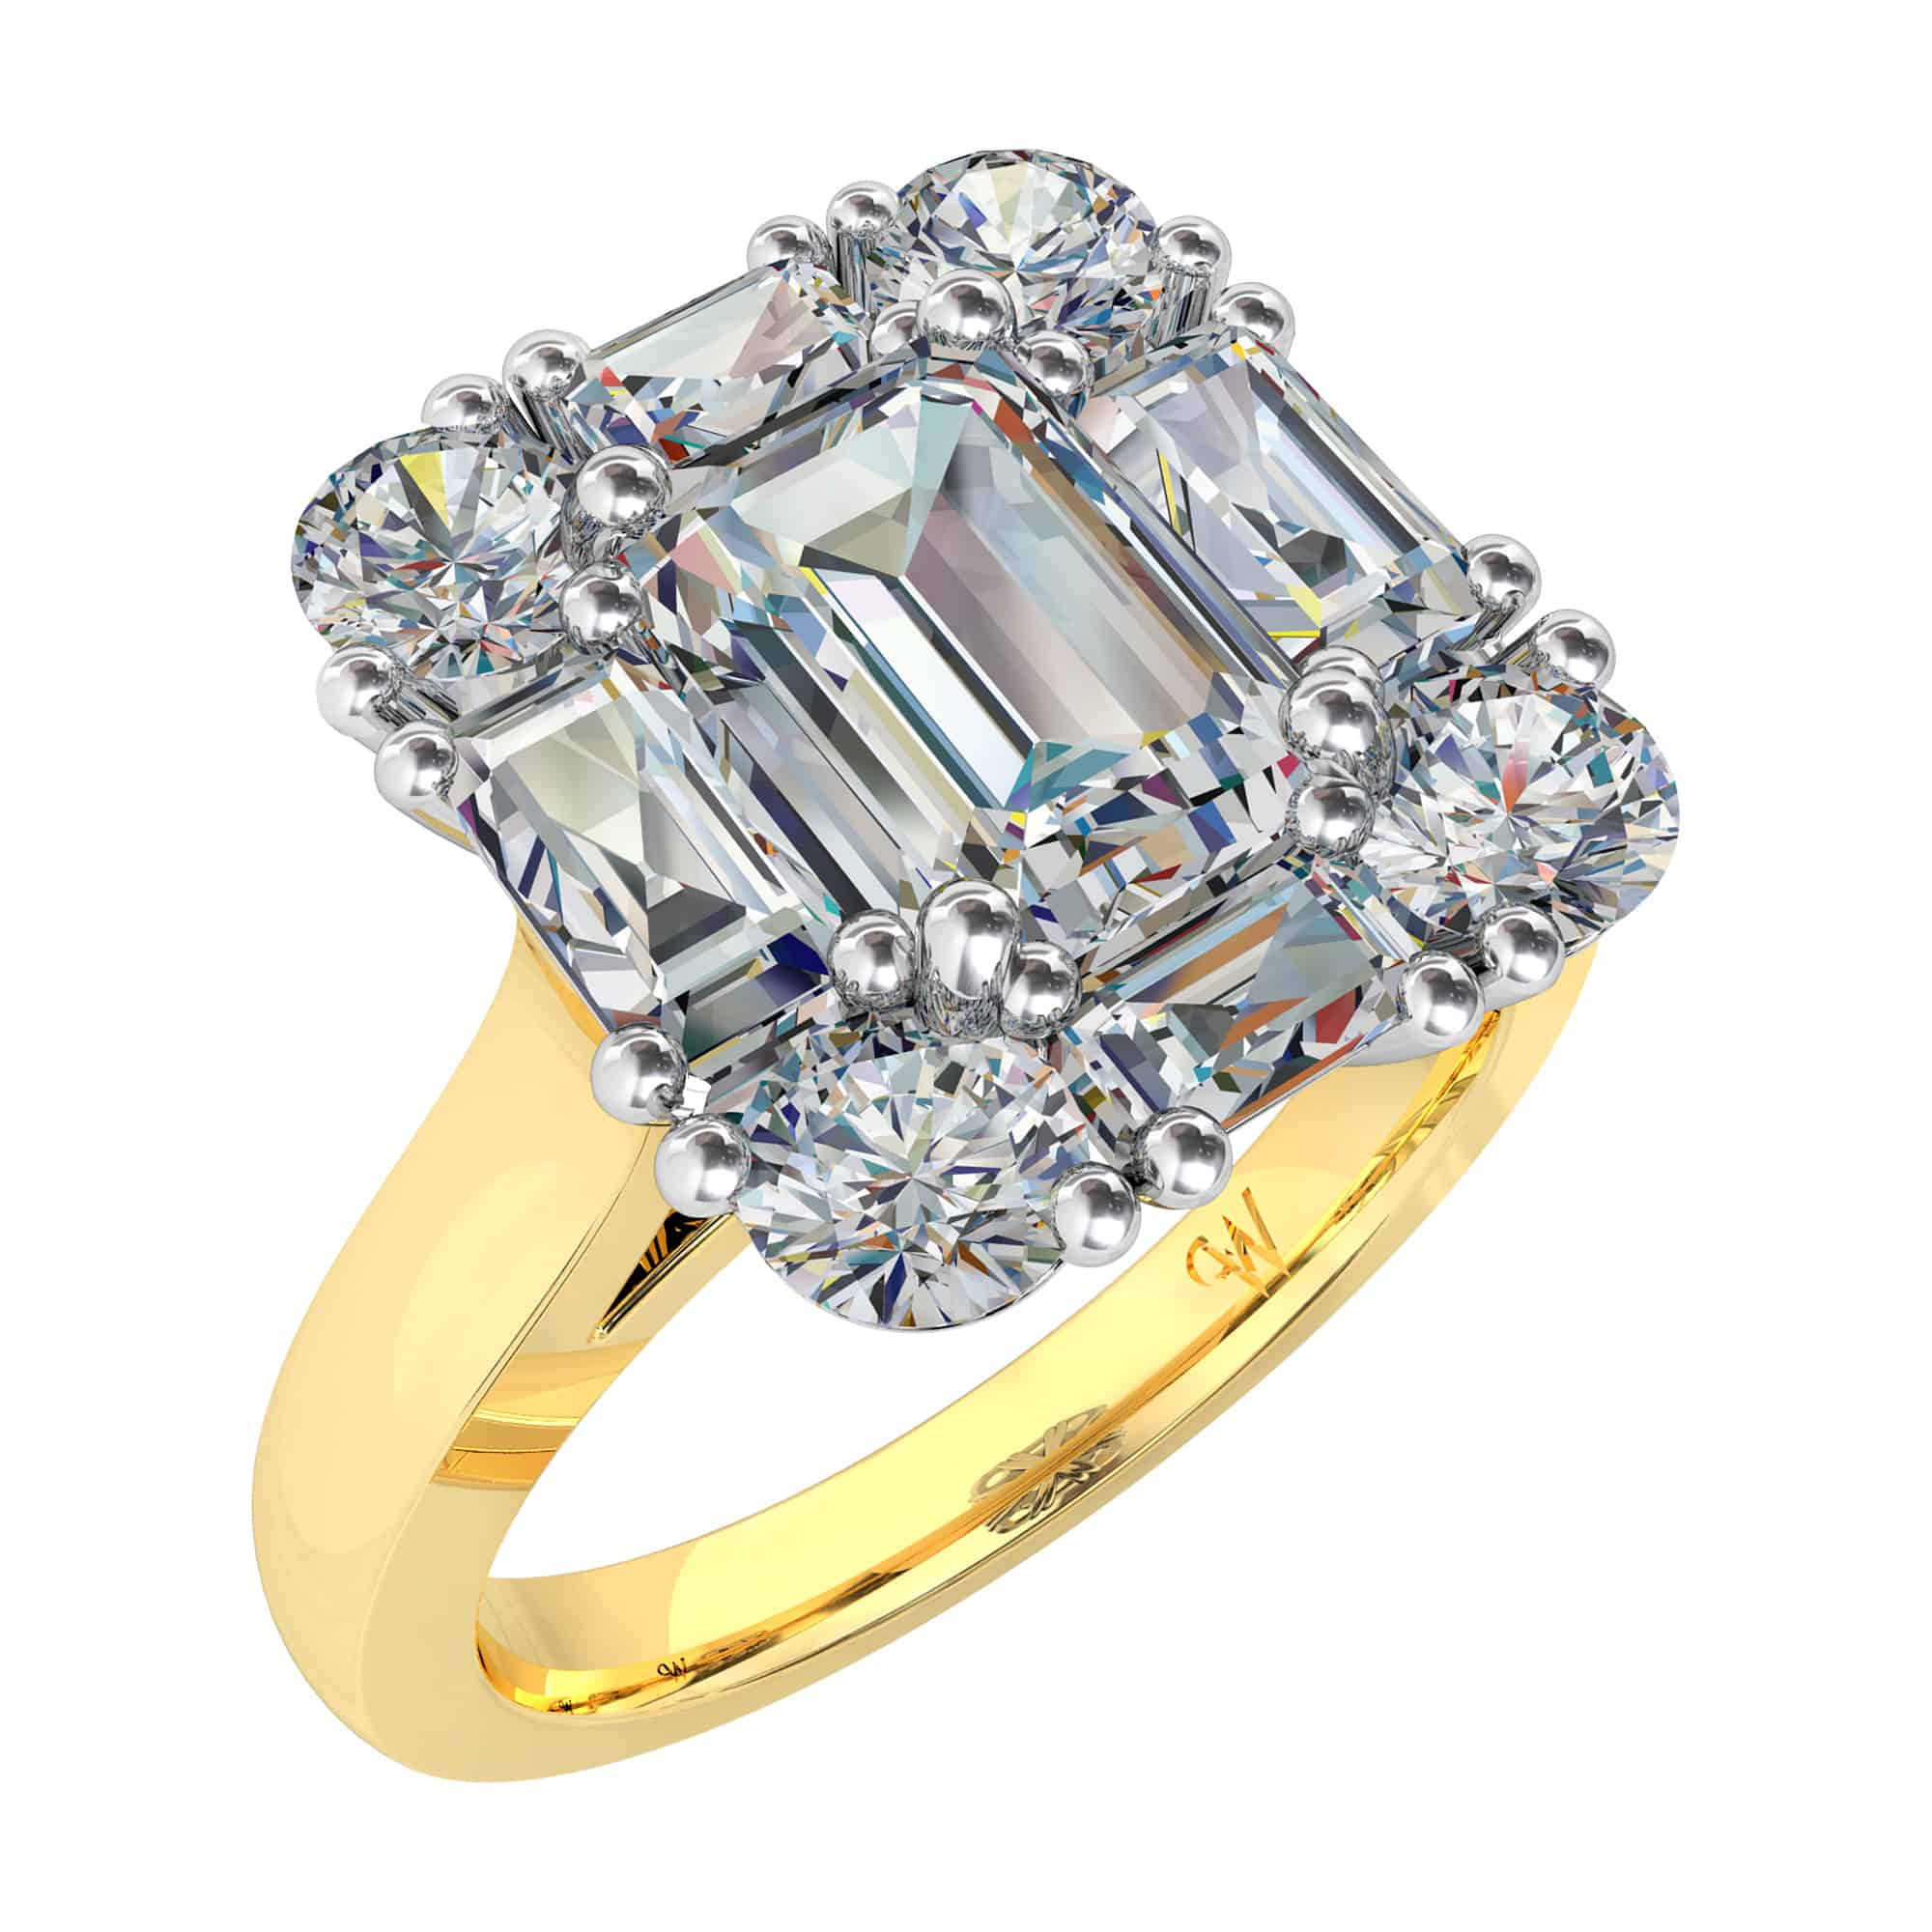 diamond campbelljewellers products engagement cut baguettes jewellery gia certified asscher platinum tapper rings campbell ring bespoke